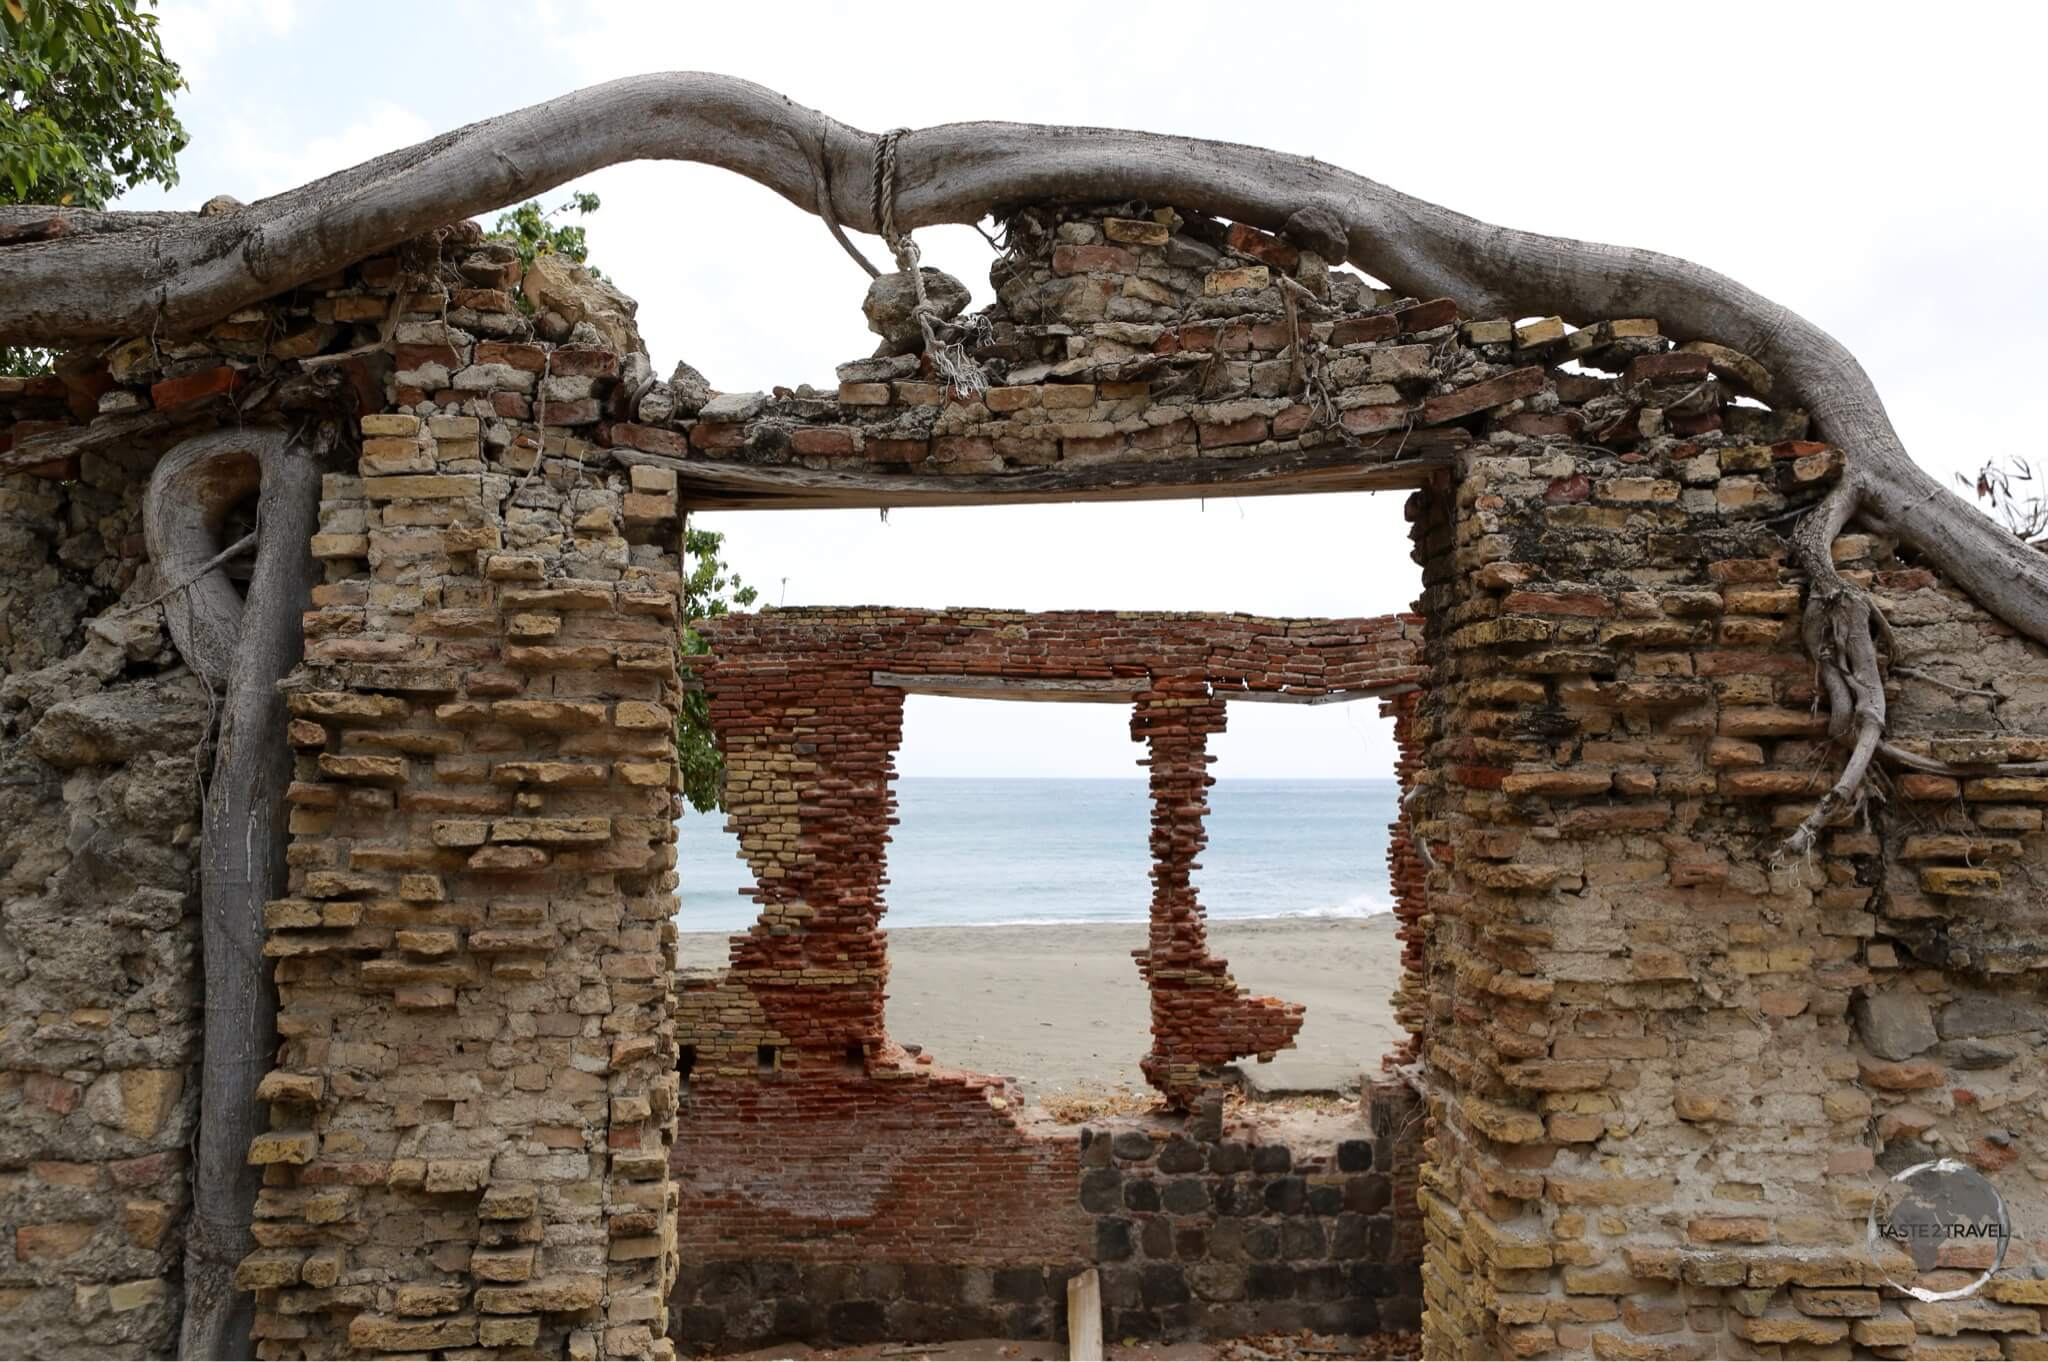 Warehouse ruins on the Lower Town beach at Oranjestad.